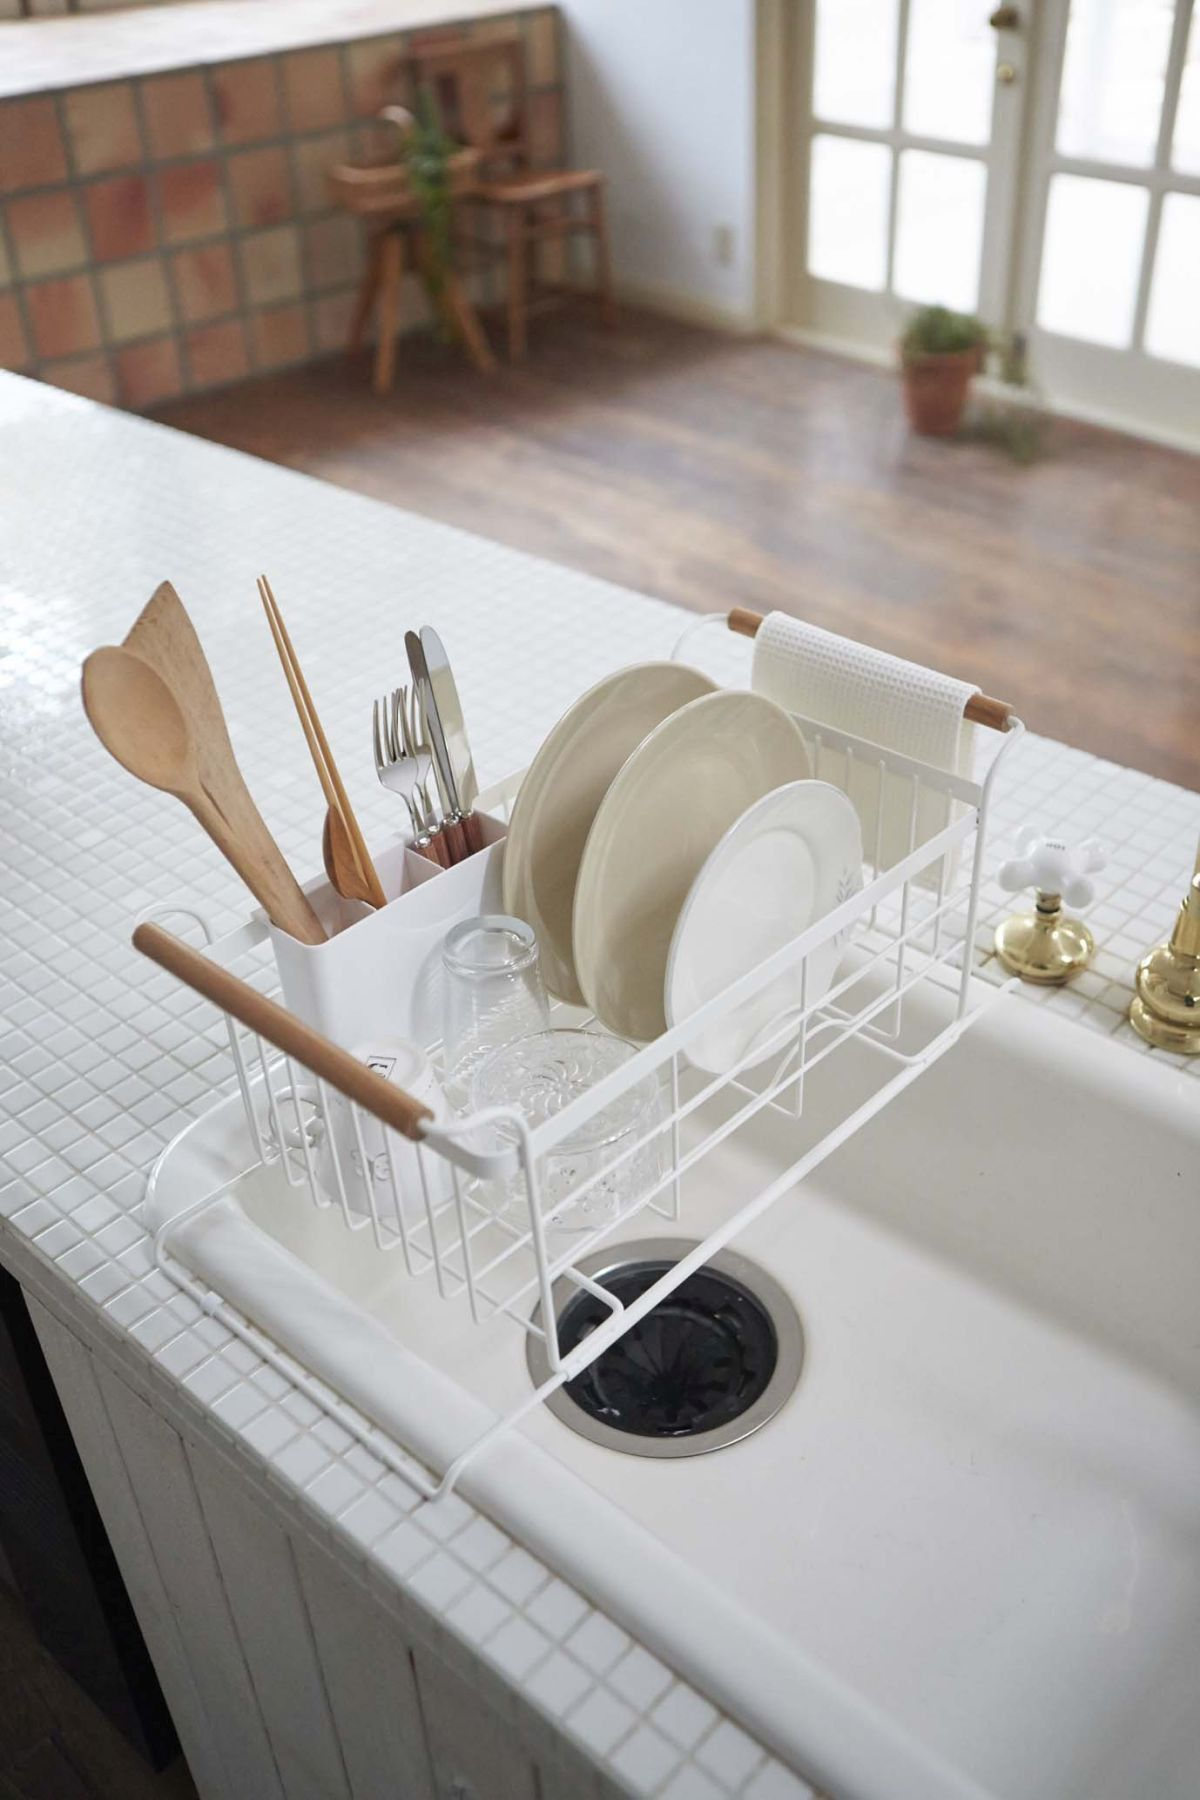 Tosca OverTheSink Dish Drainer Rack in White design by